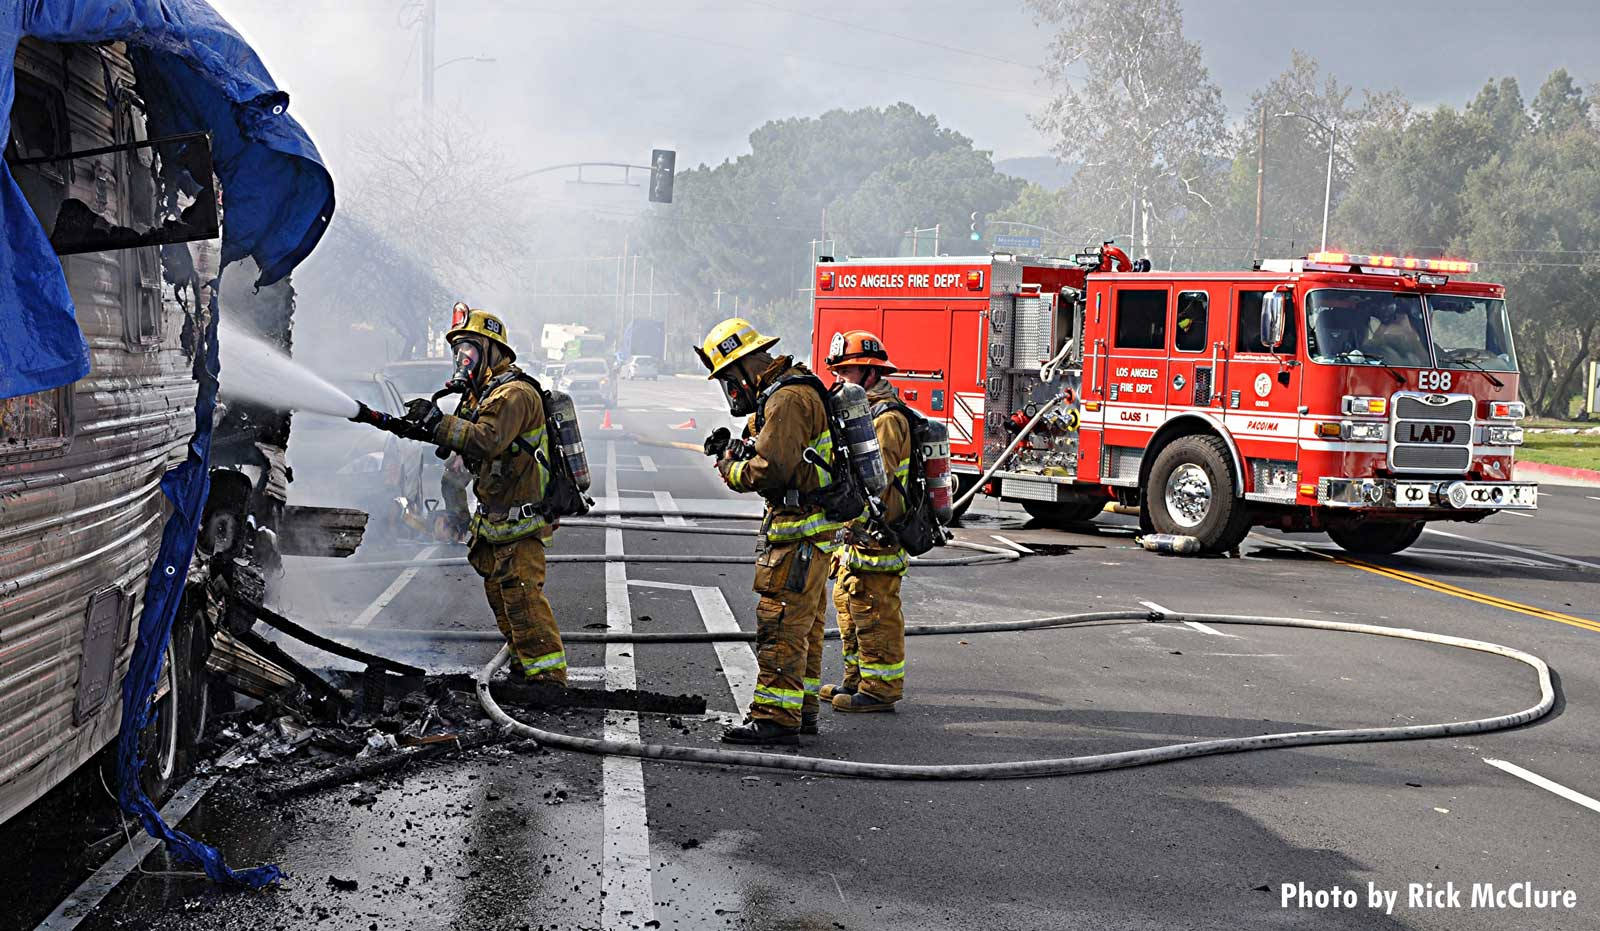 Fire apparatus and firefighters at the scene of this fire in L.A.